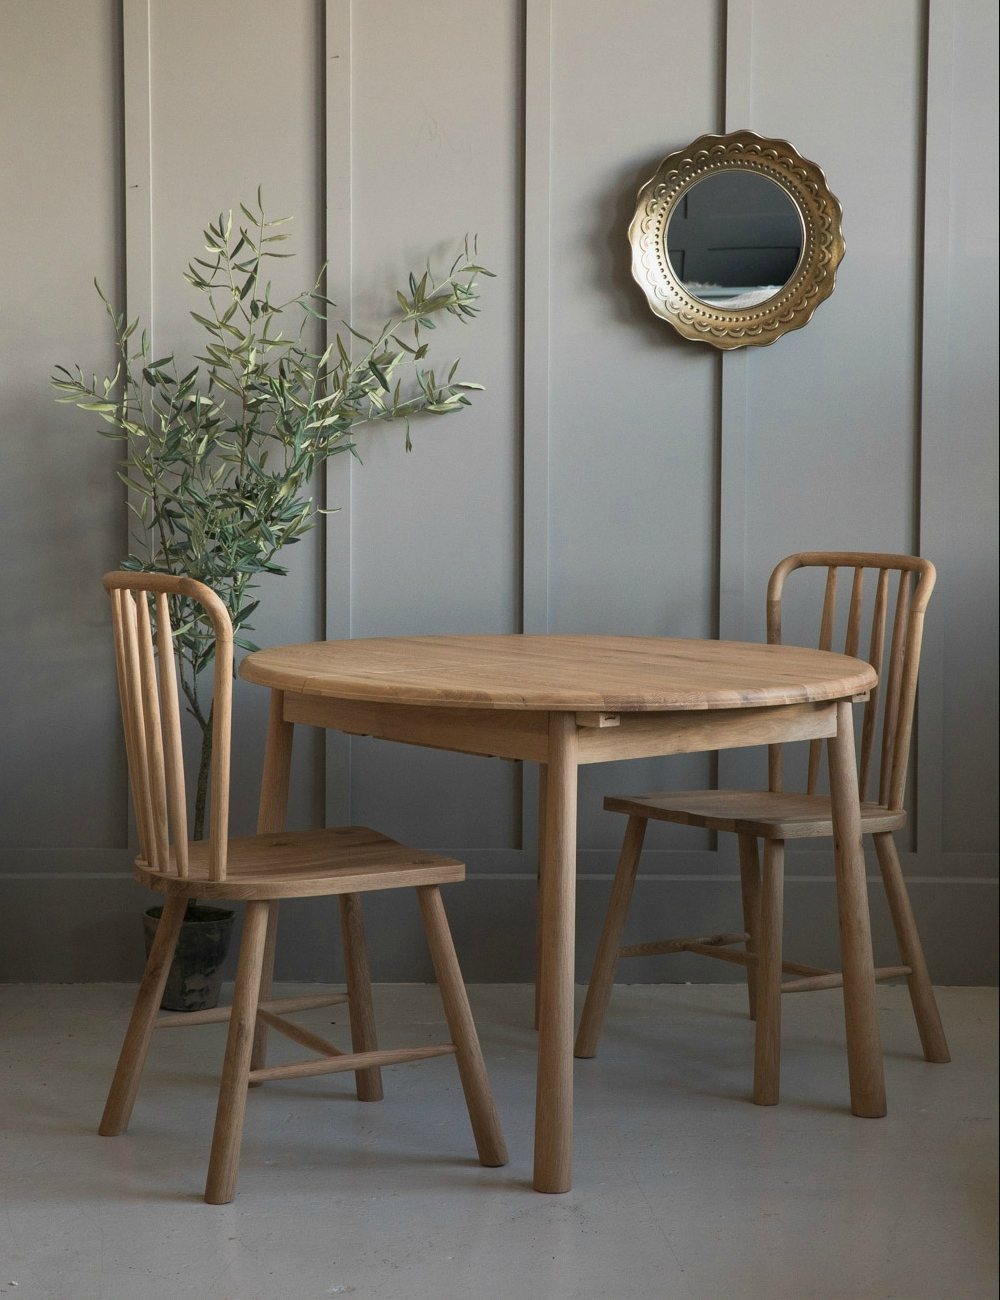 Extendable Round Dining Tables Intended For Preferred Nordic Round Extending Dining Table At Rose & Grey (View 3 of 25)